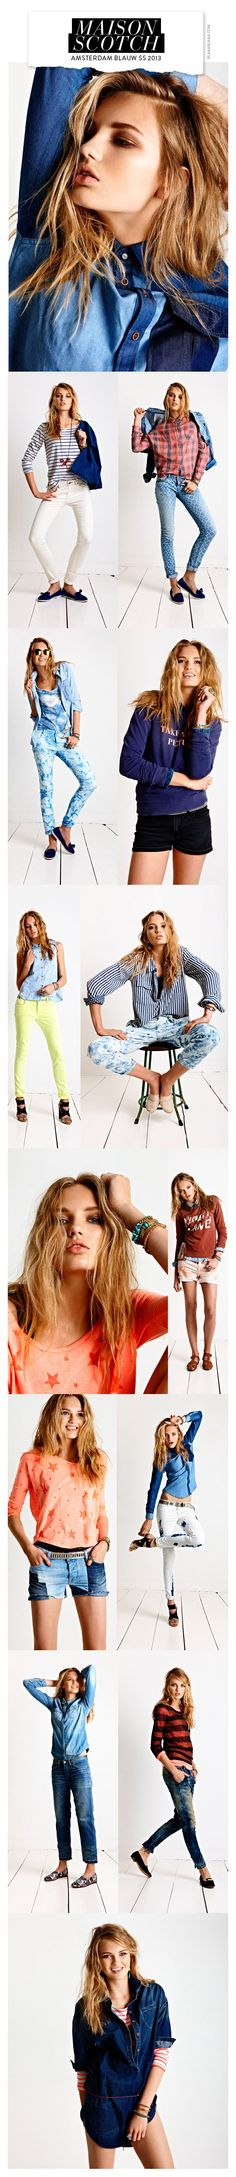 Maison Scotch Amsterdam Blauw SS 2013 | The House of Beccaria~